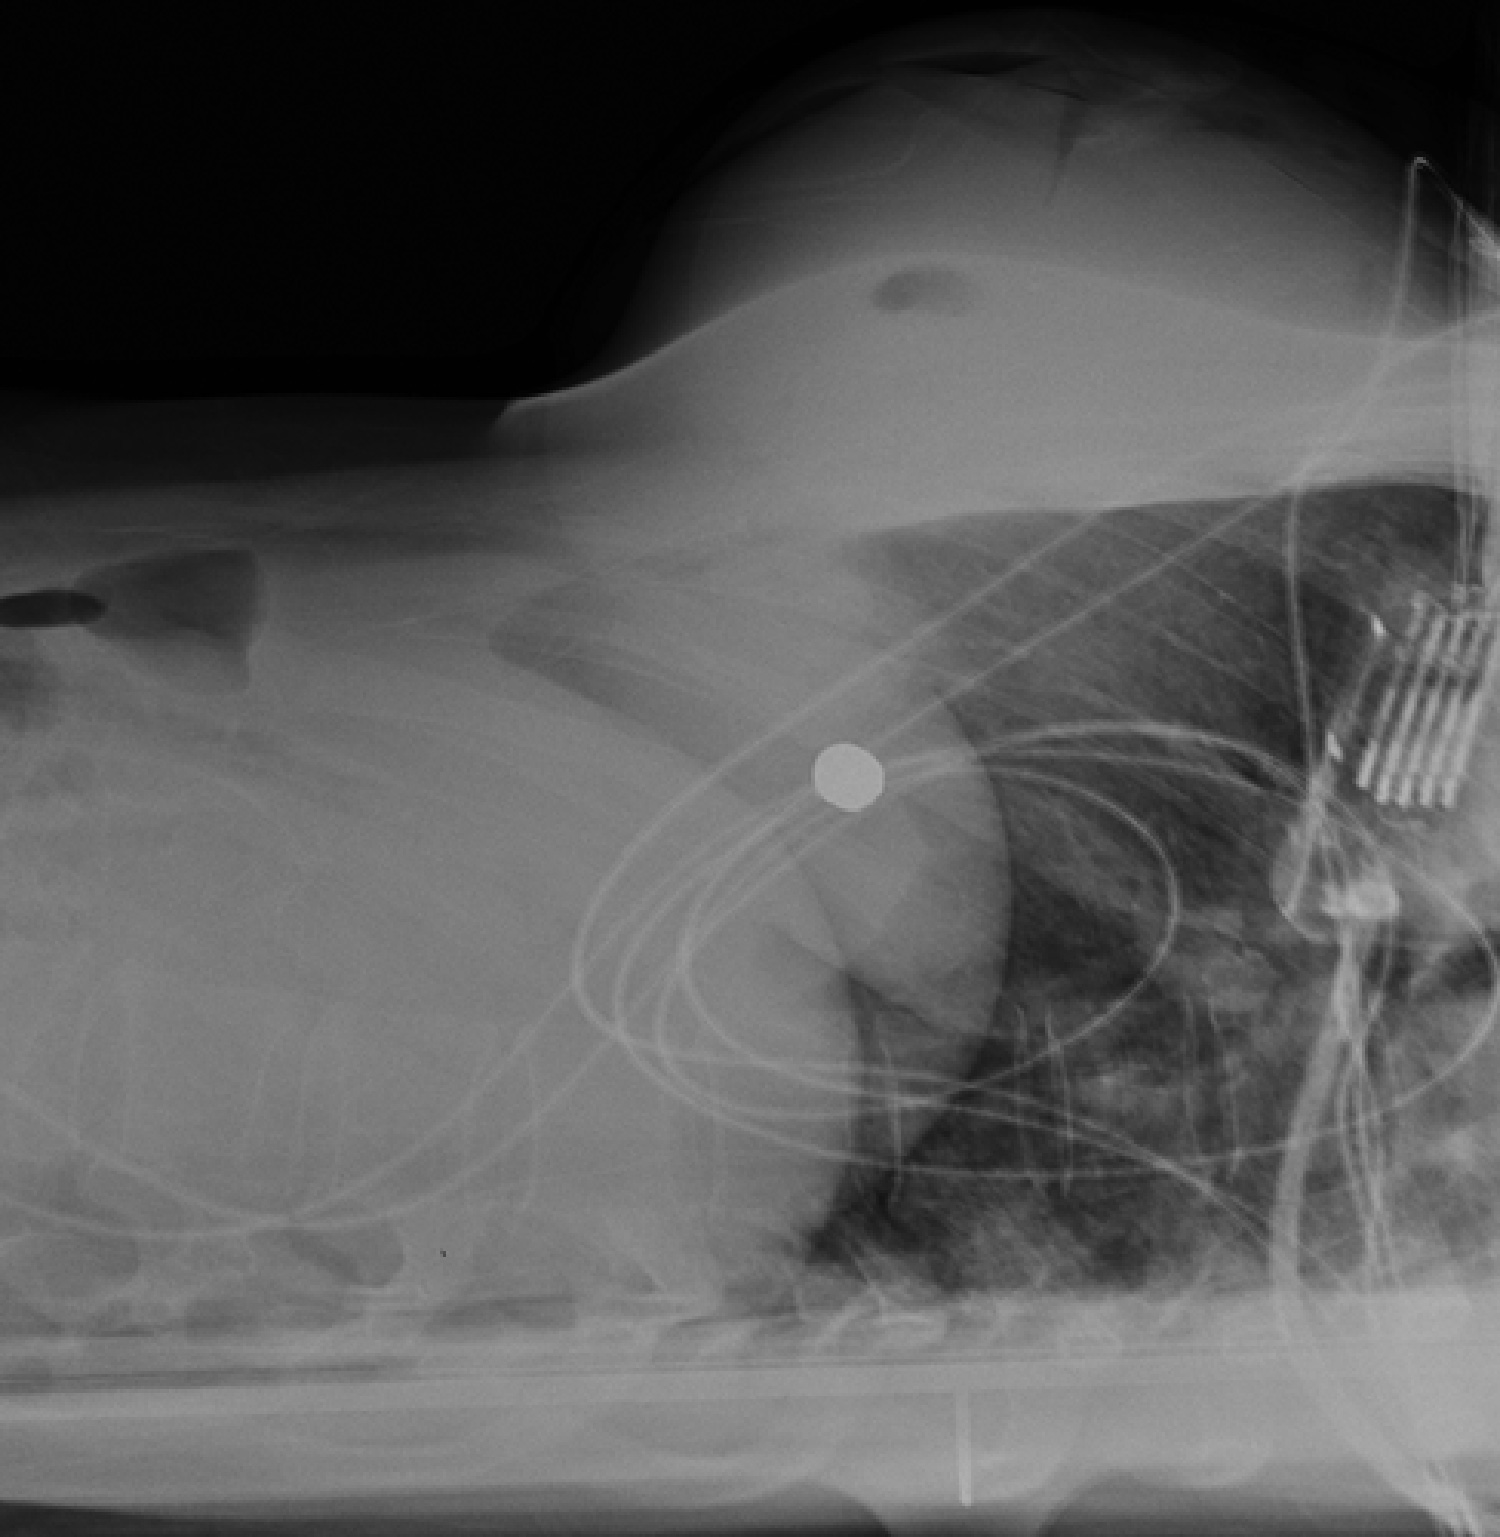 Chest radiographs. Bullet is visible at center left.